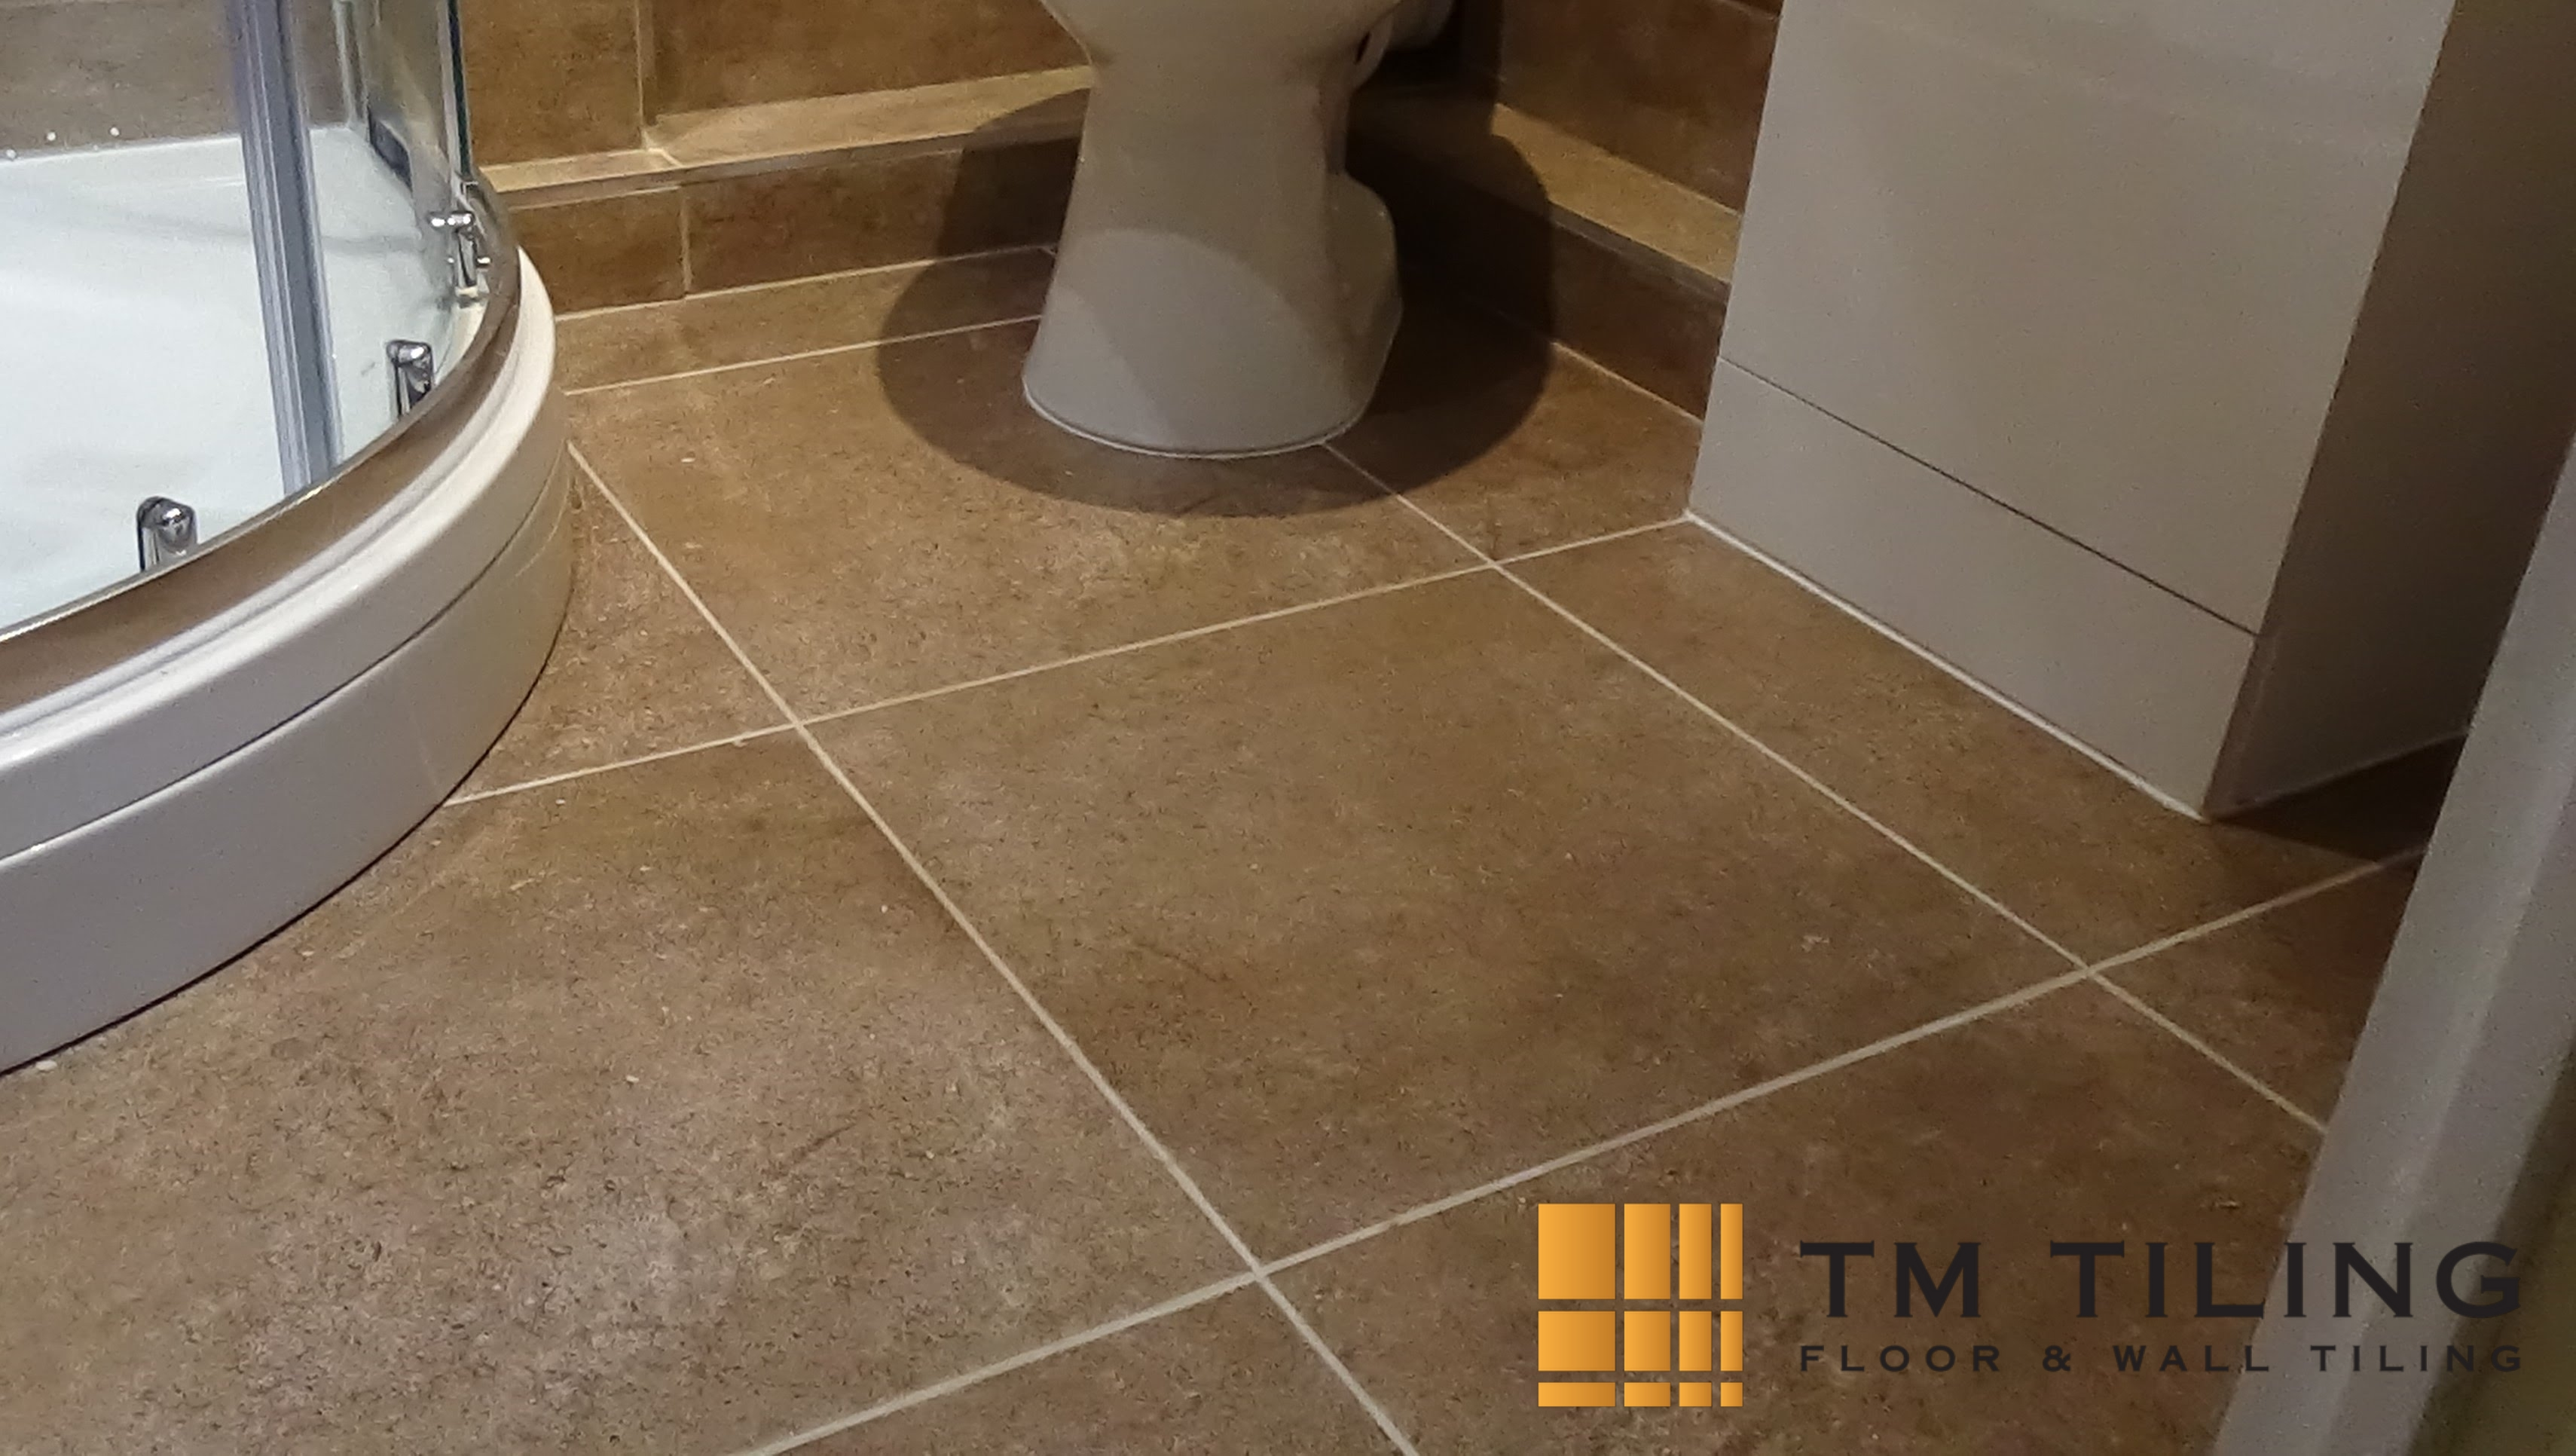 toilet-tiles-flooring-waterproofing-tm-tiling-singapore_wm